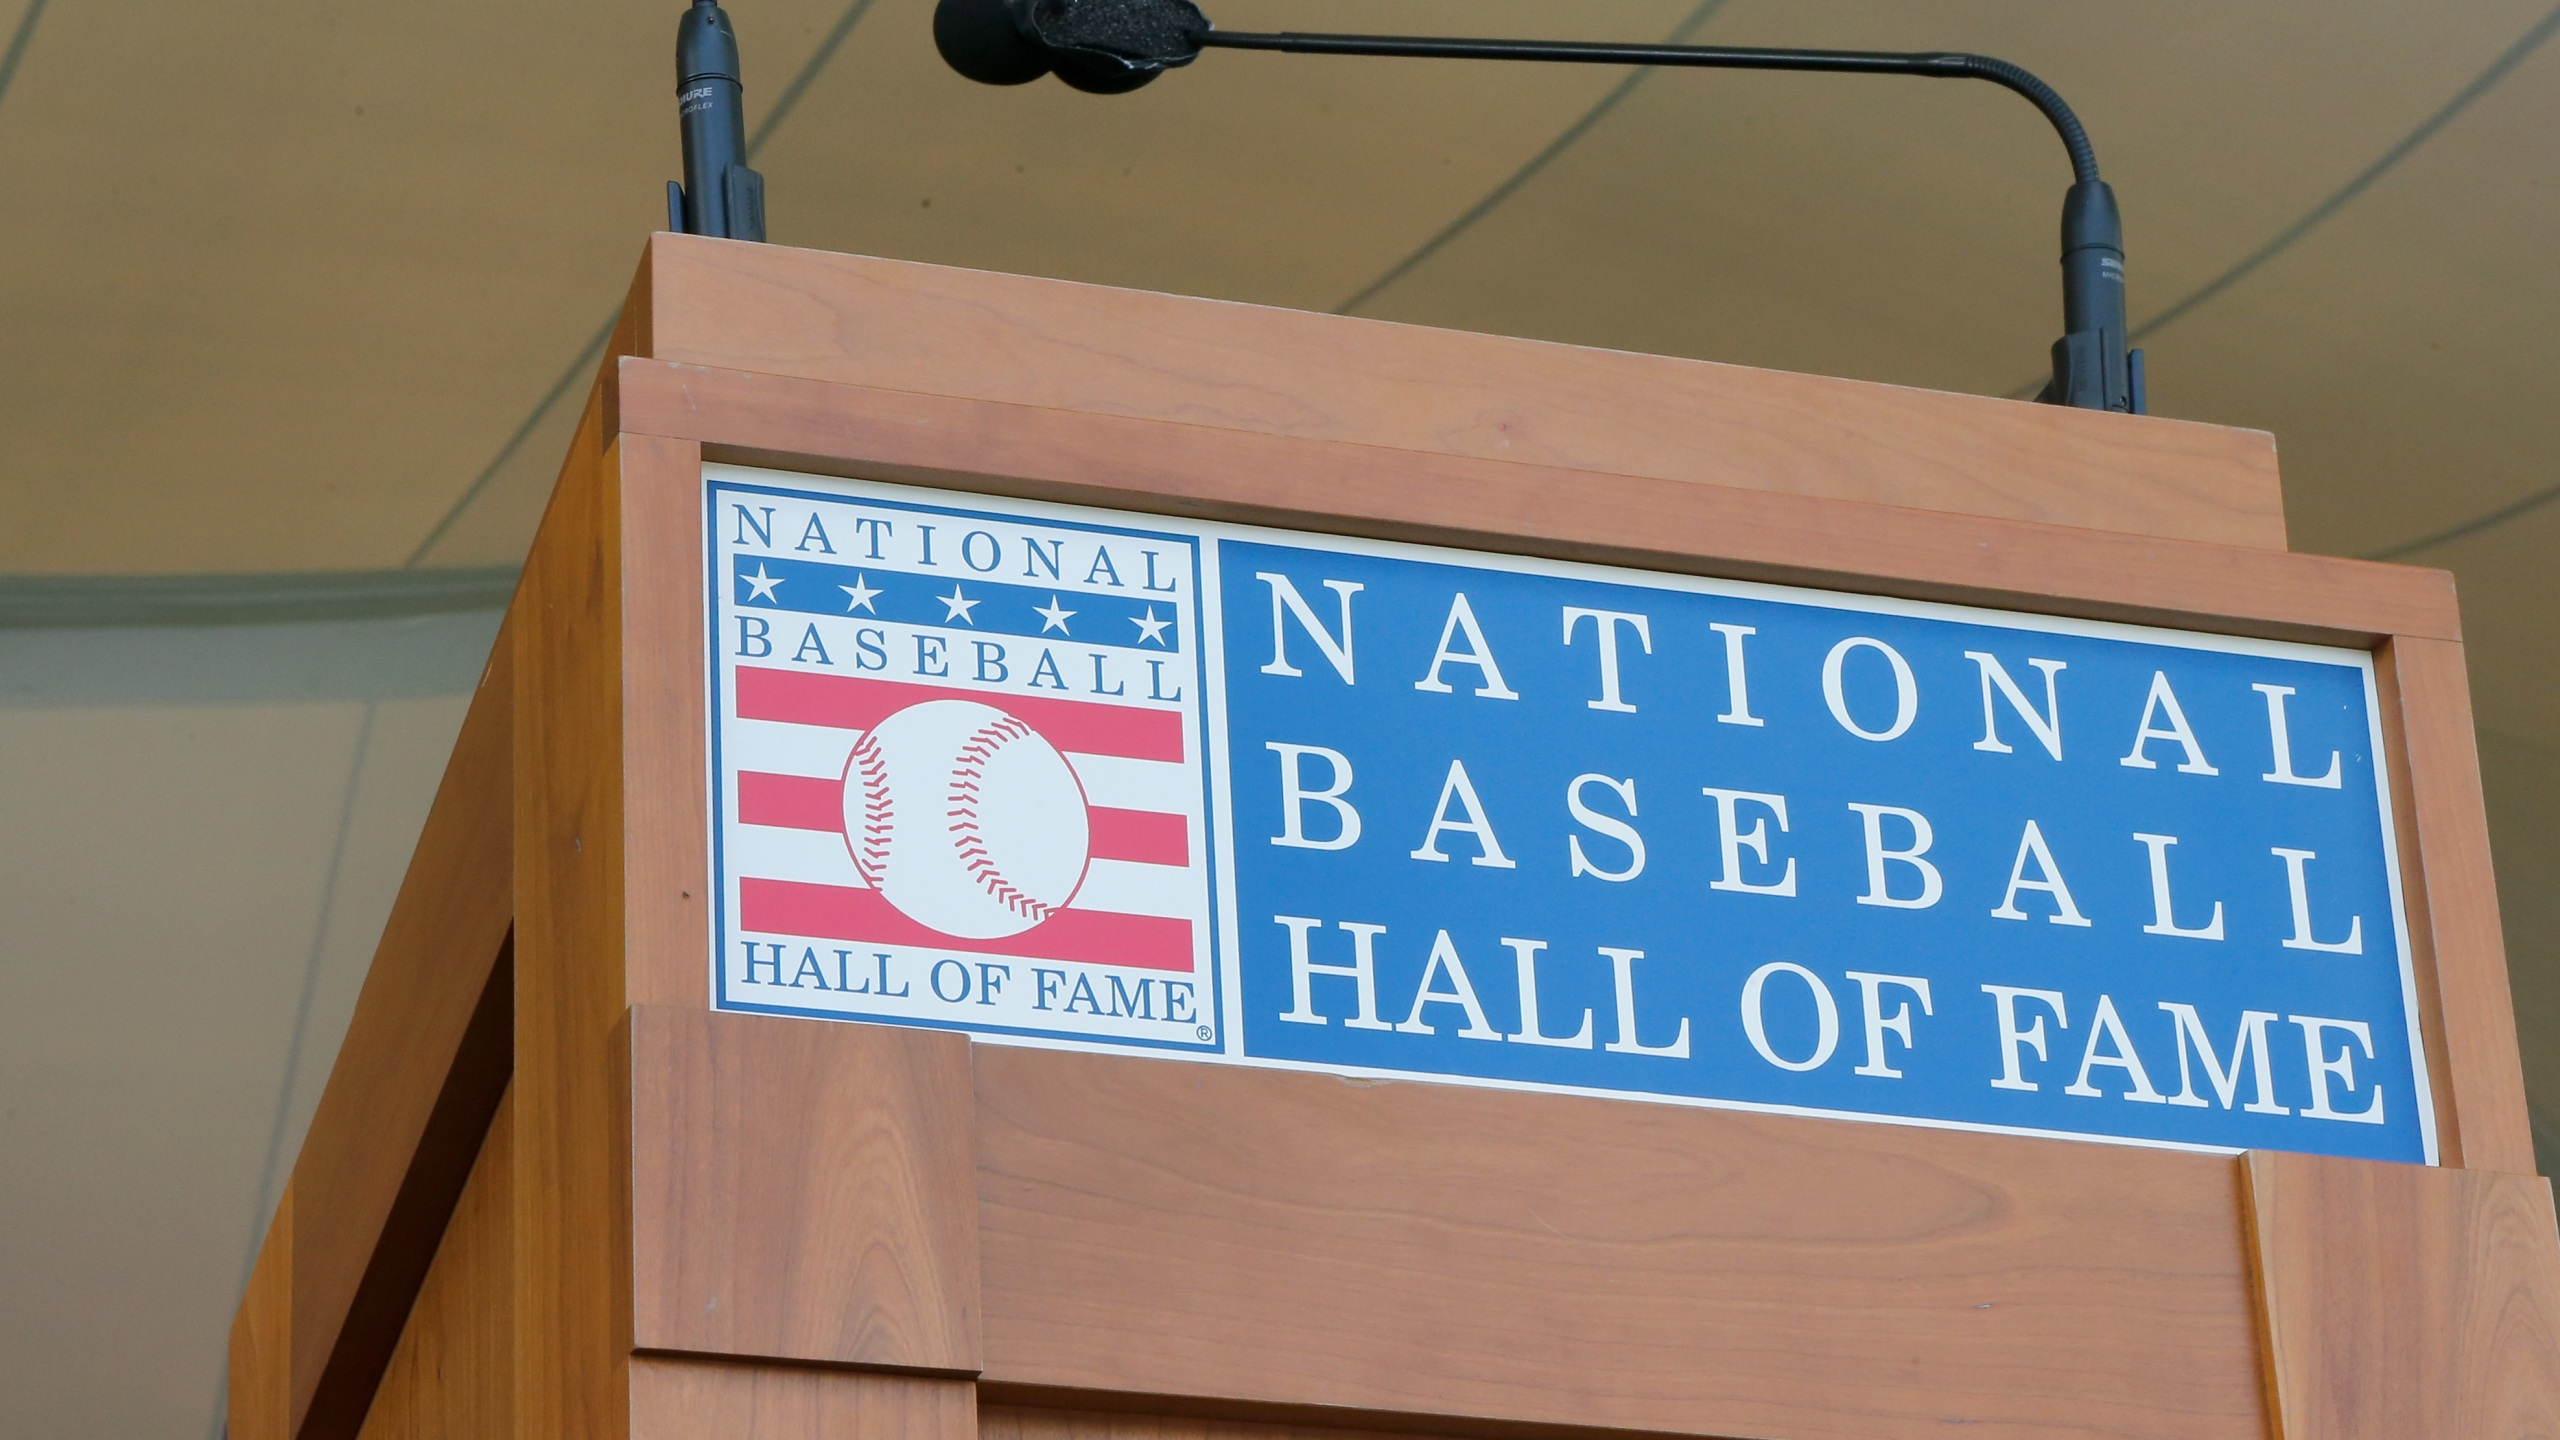 The podium is seen at Clark Sports Center during the Baseball Hall of Fame induction ceremony on July 29, 2018 in Cooperstown, New York. (Jim McIsaac/Getty Images)